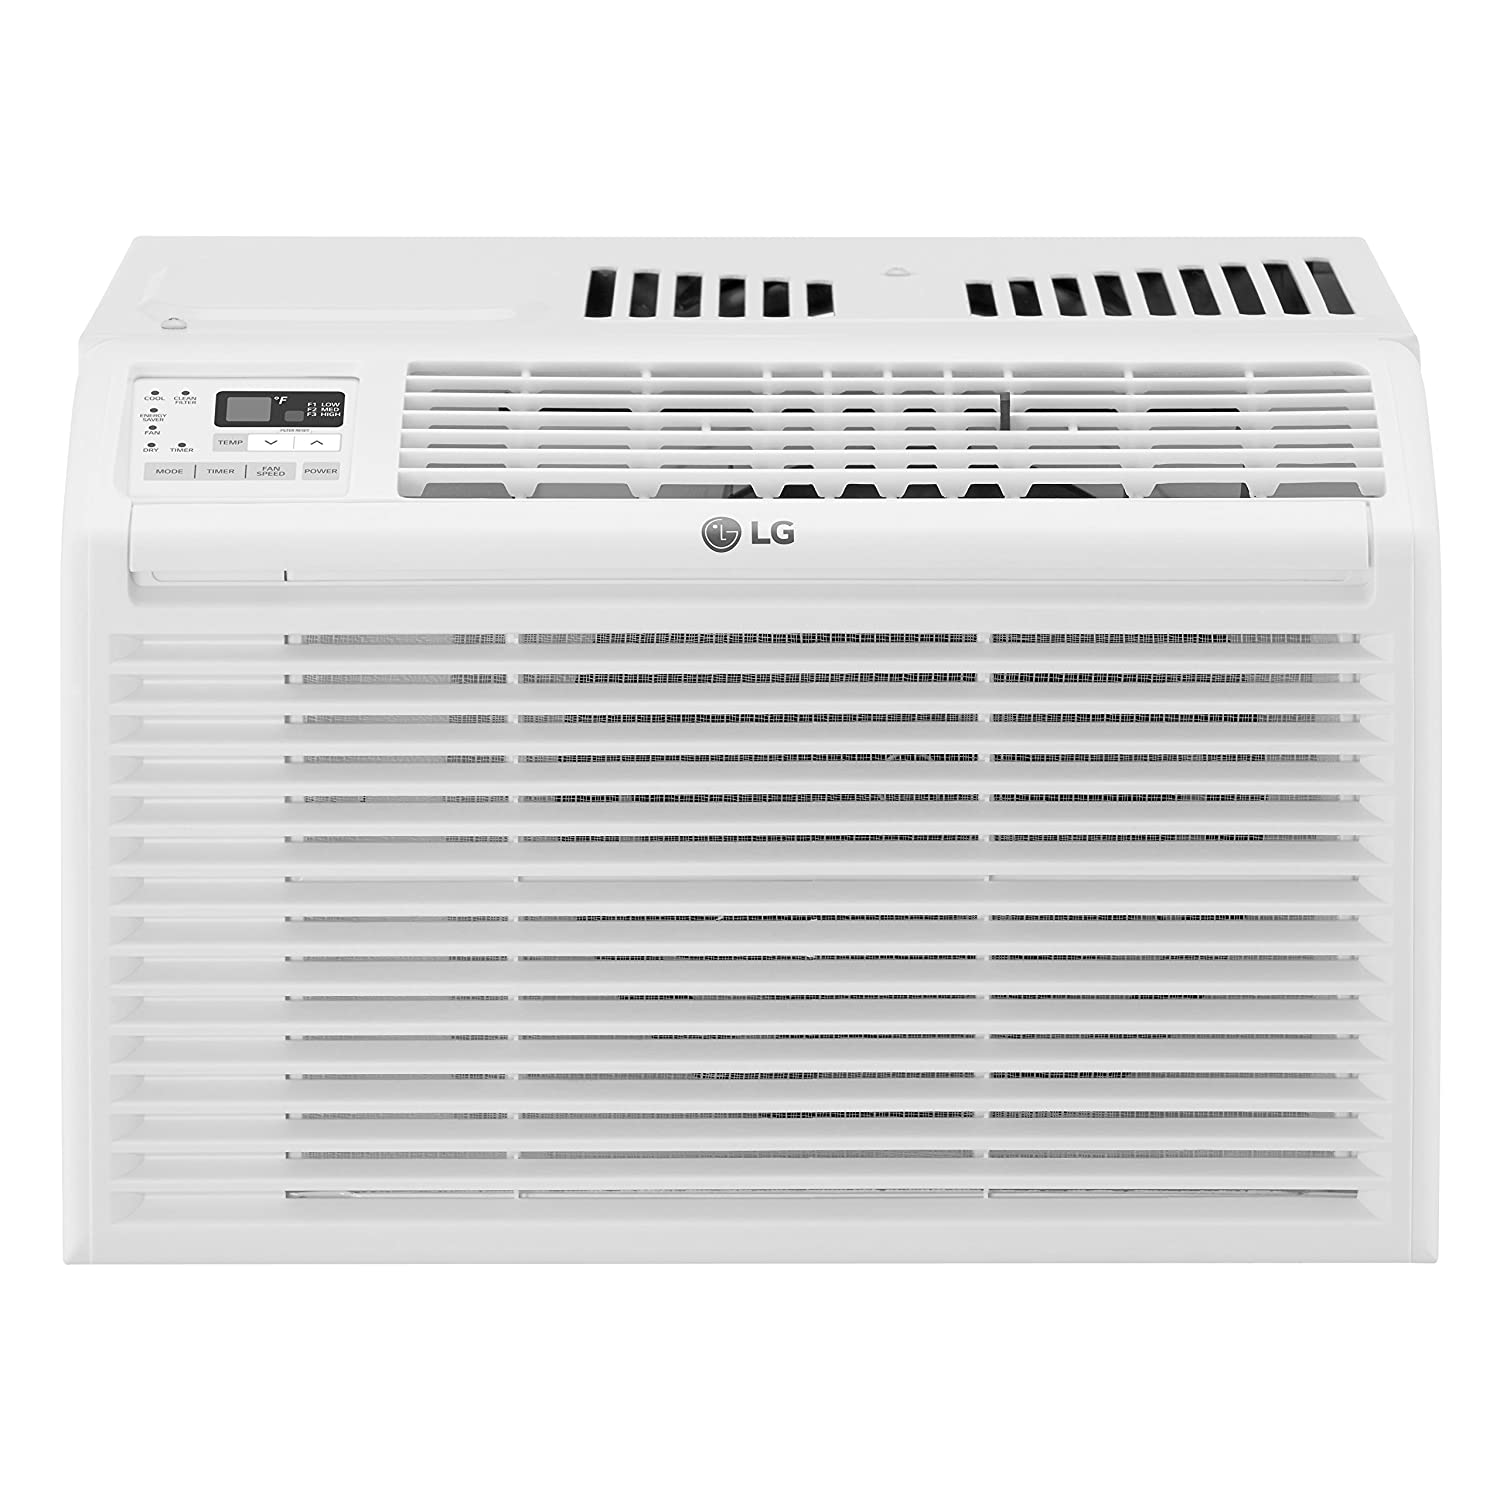 Amazon.com: LG LW6017R 6,000 BTU 115V Window Air Conditioner, White: Home \u0026 Kitchen White